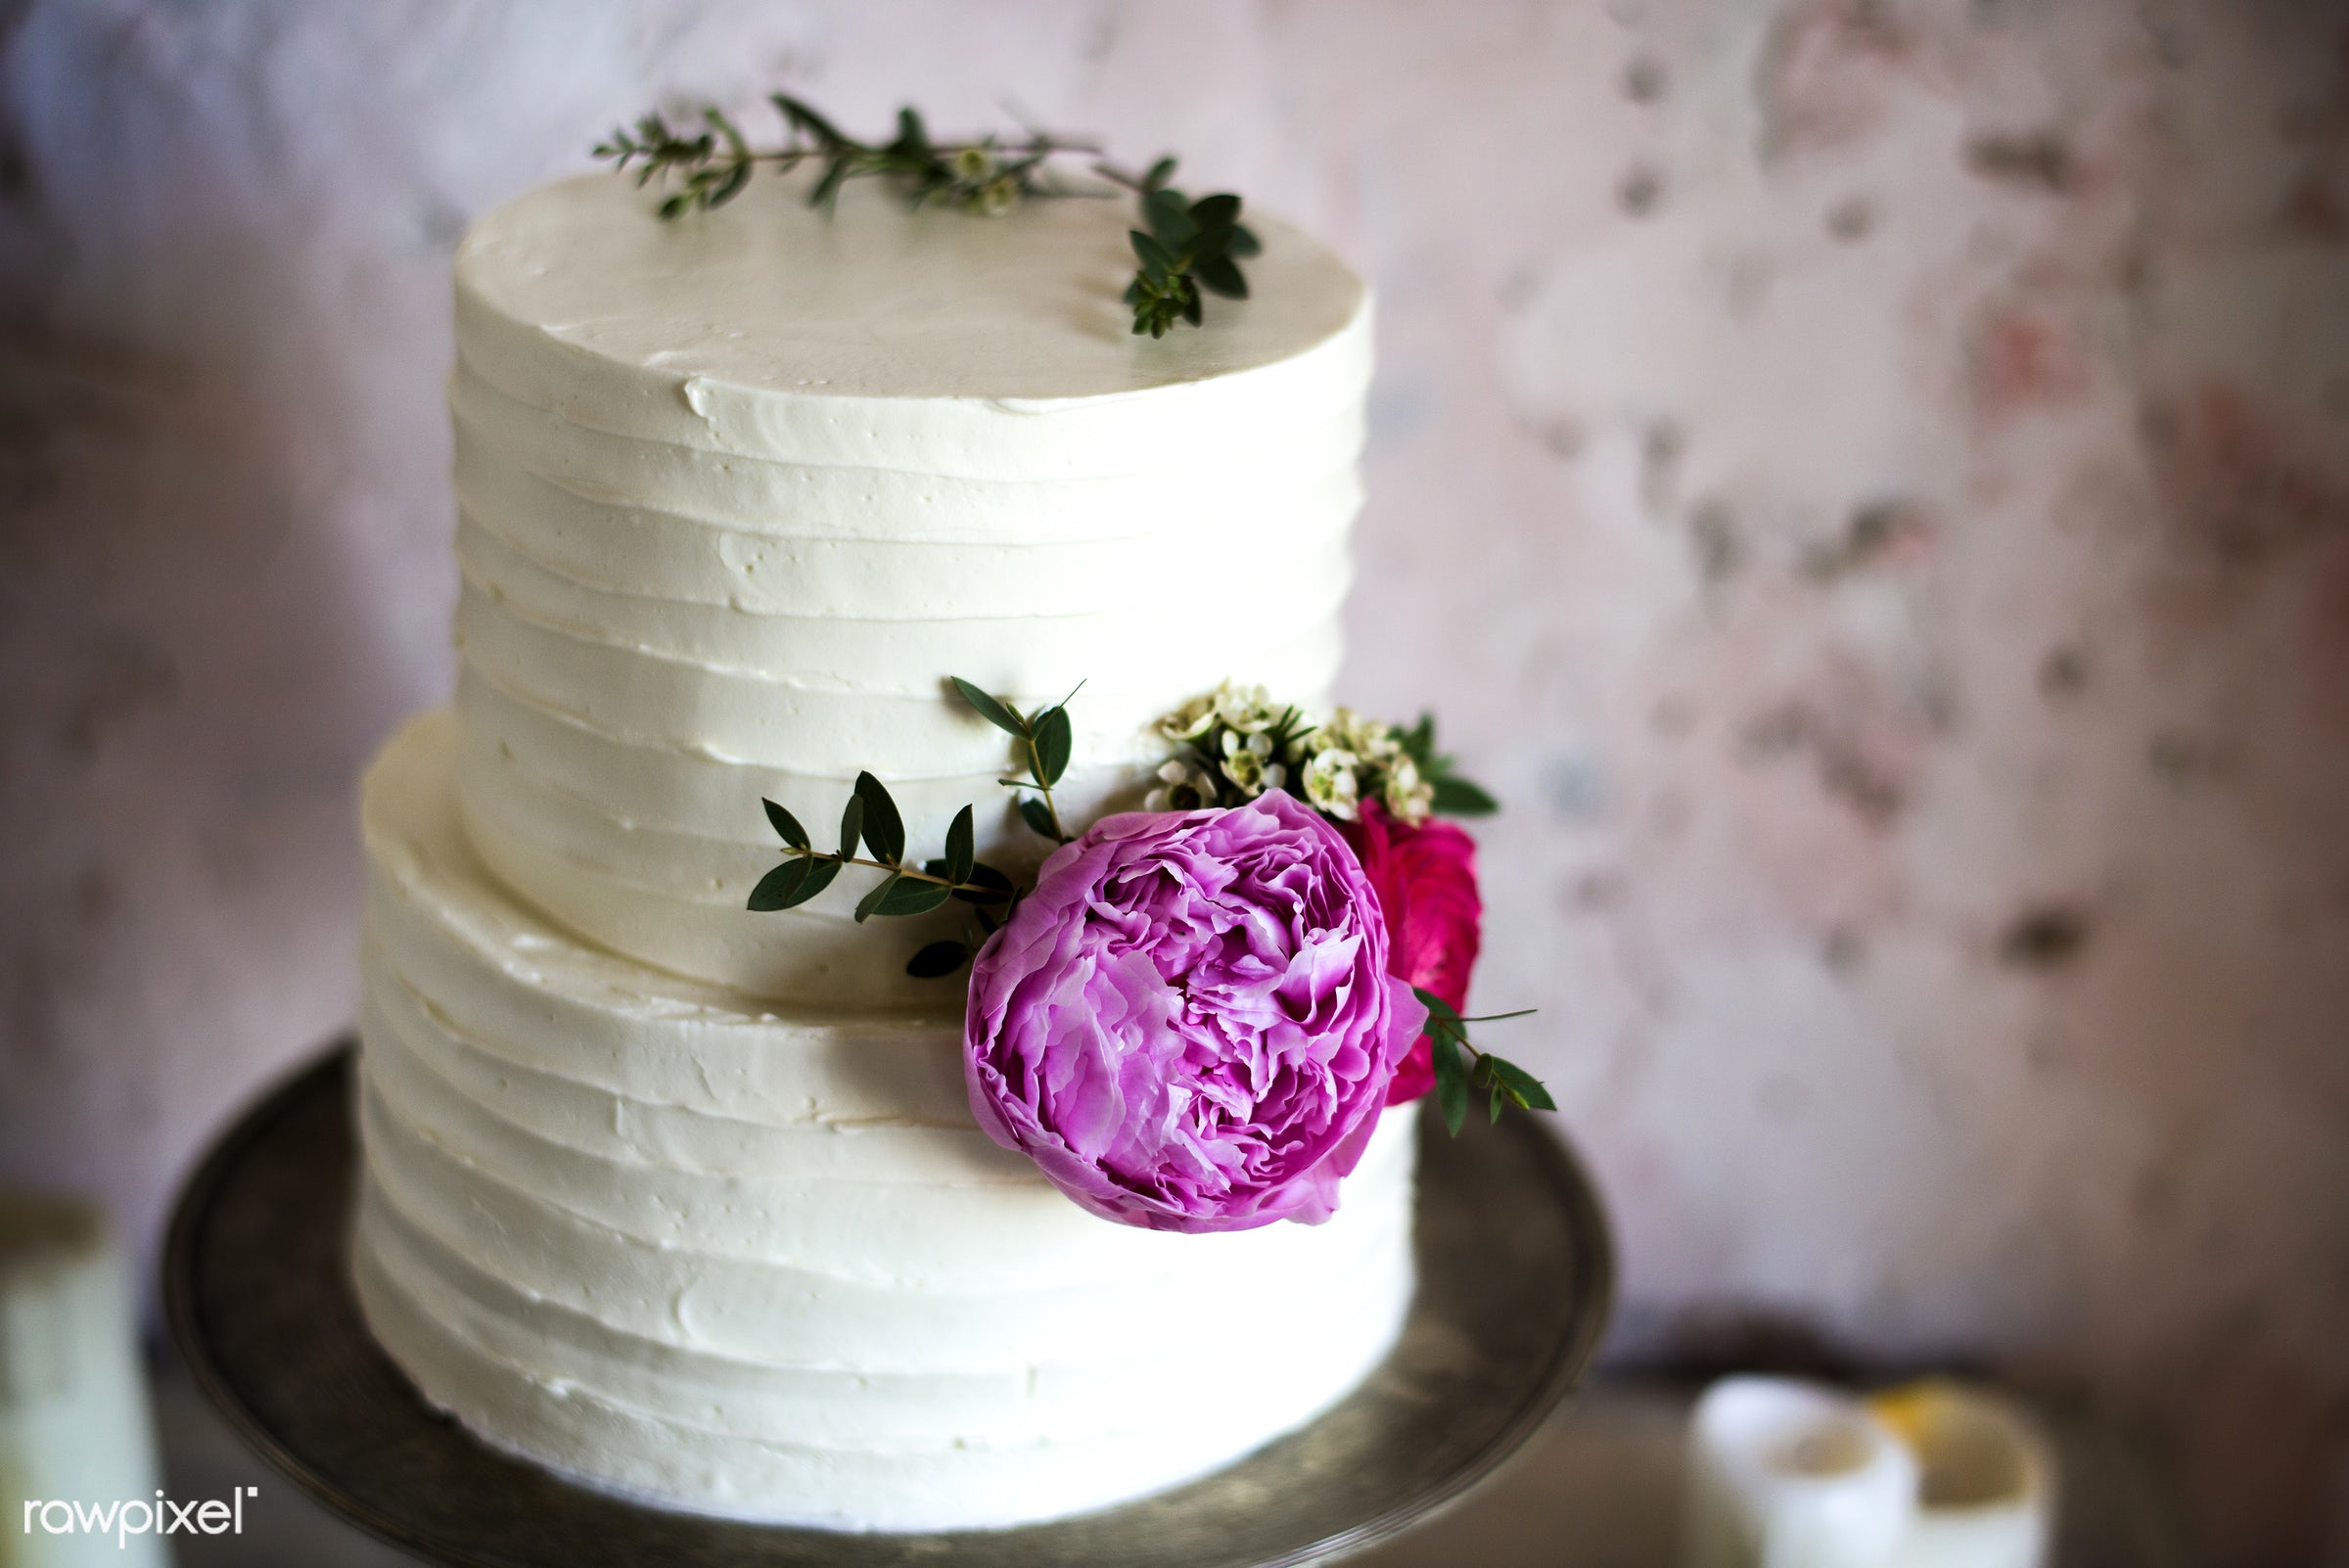 nobody, layers, bakery, event, banquet, flowers, closeup, dessert, cake, decoration, white, ceremony, marriage, reception,...